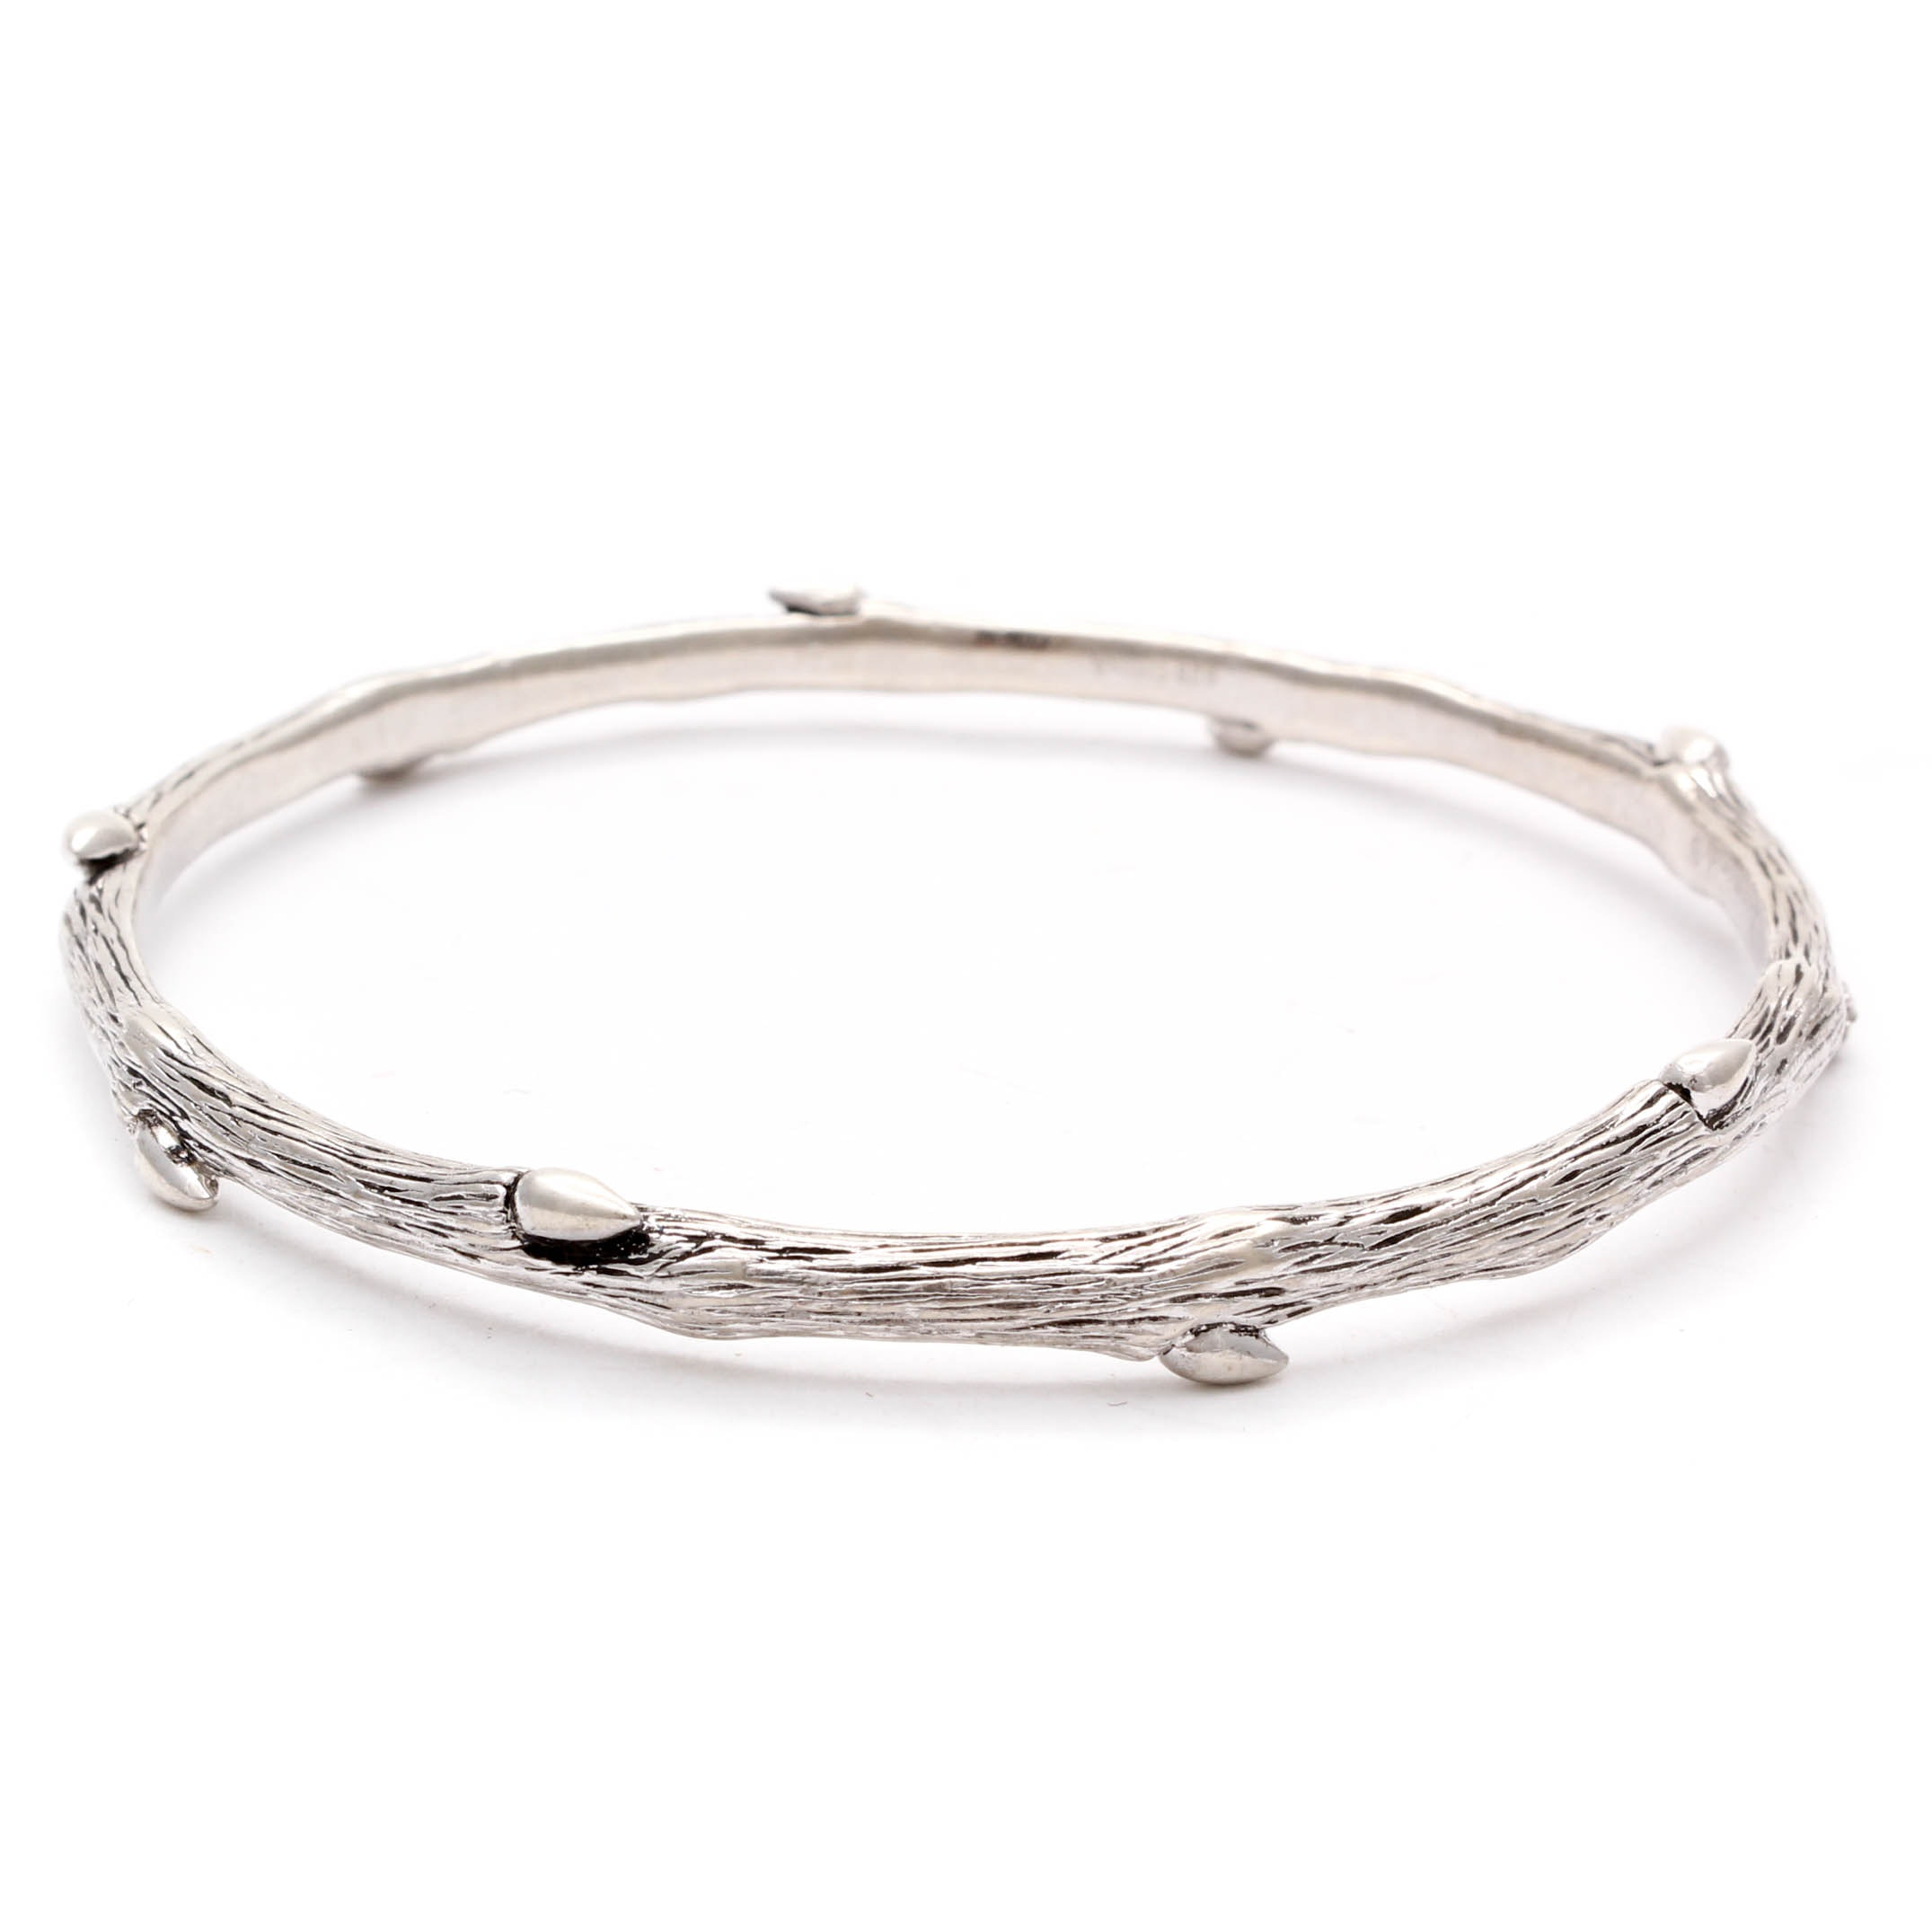 Silver Tone Costume Jewelry Bangle Bracelet